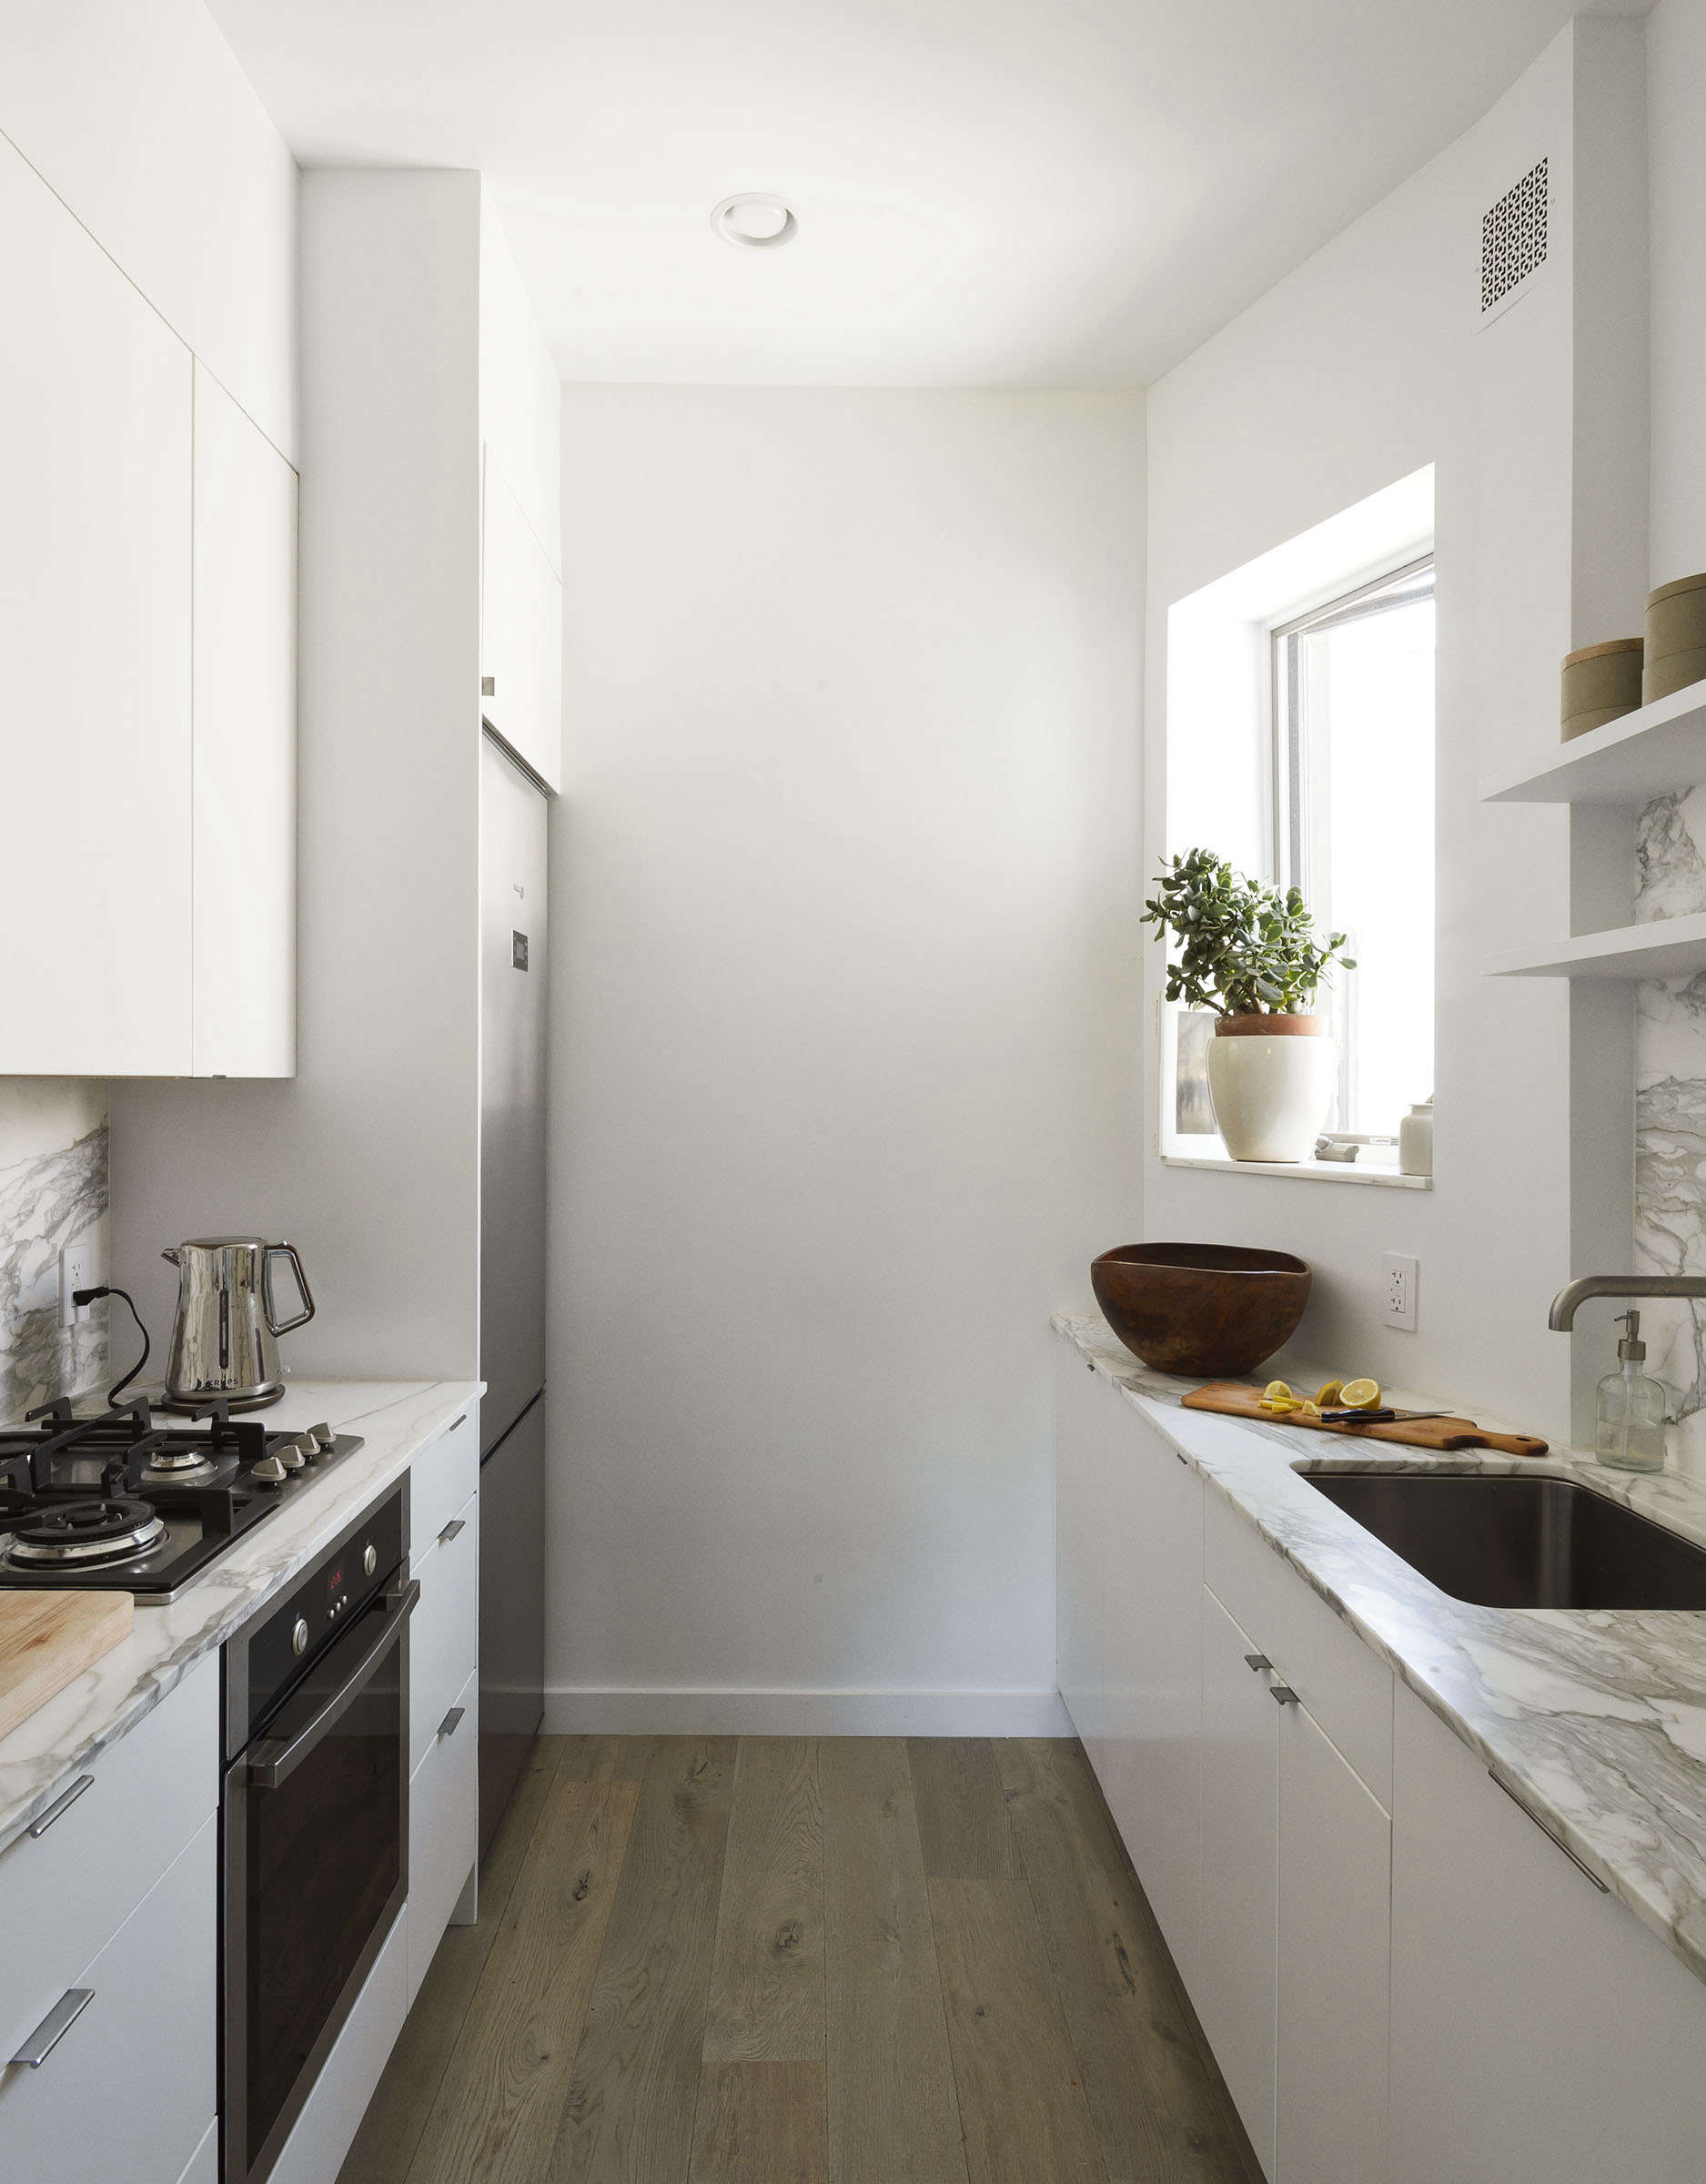 Ikea galley kitchen in Jacqueline-Schmidt and David Friedlander's 675-square-foot Brooklyn quarters, Matthew-Williams-photo | Remodelista